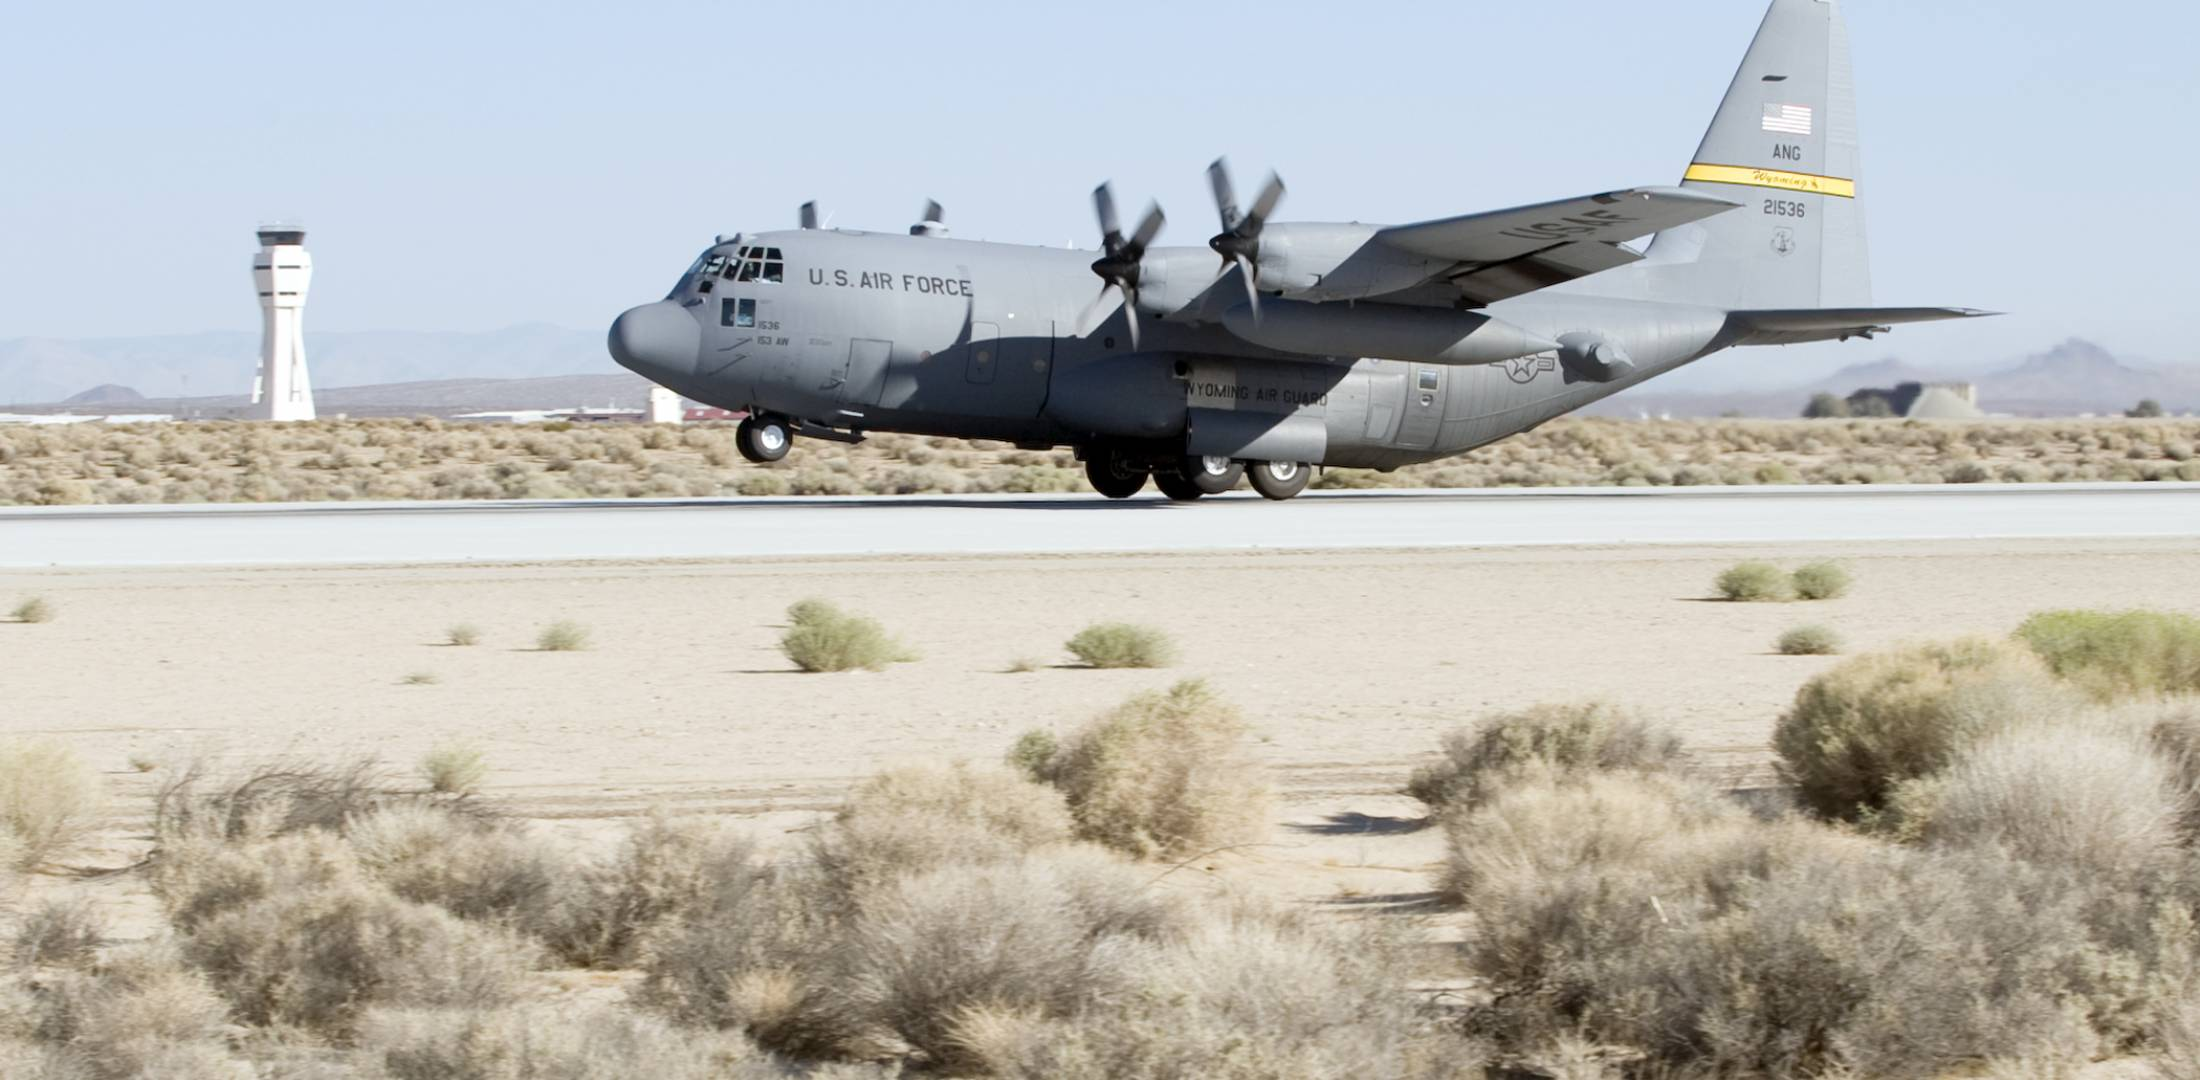 U.S. Air Force C-130